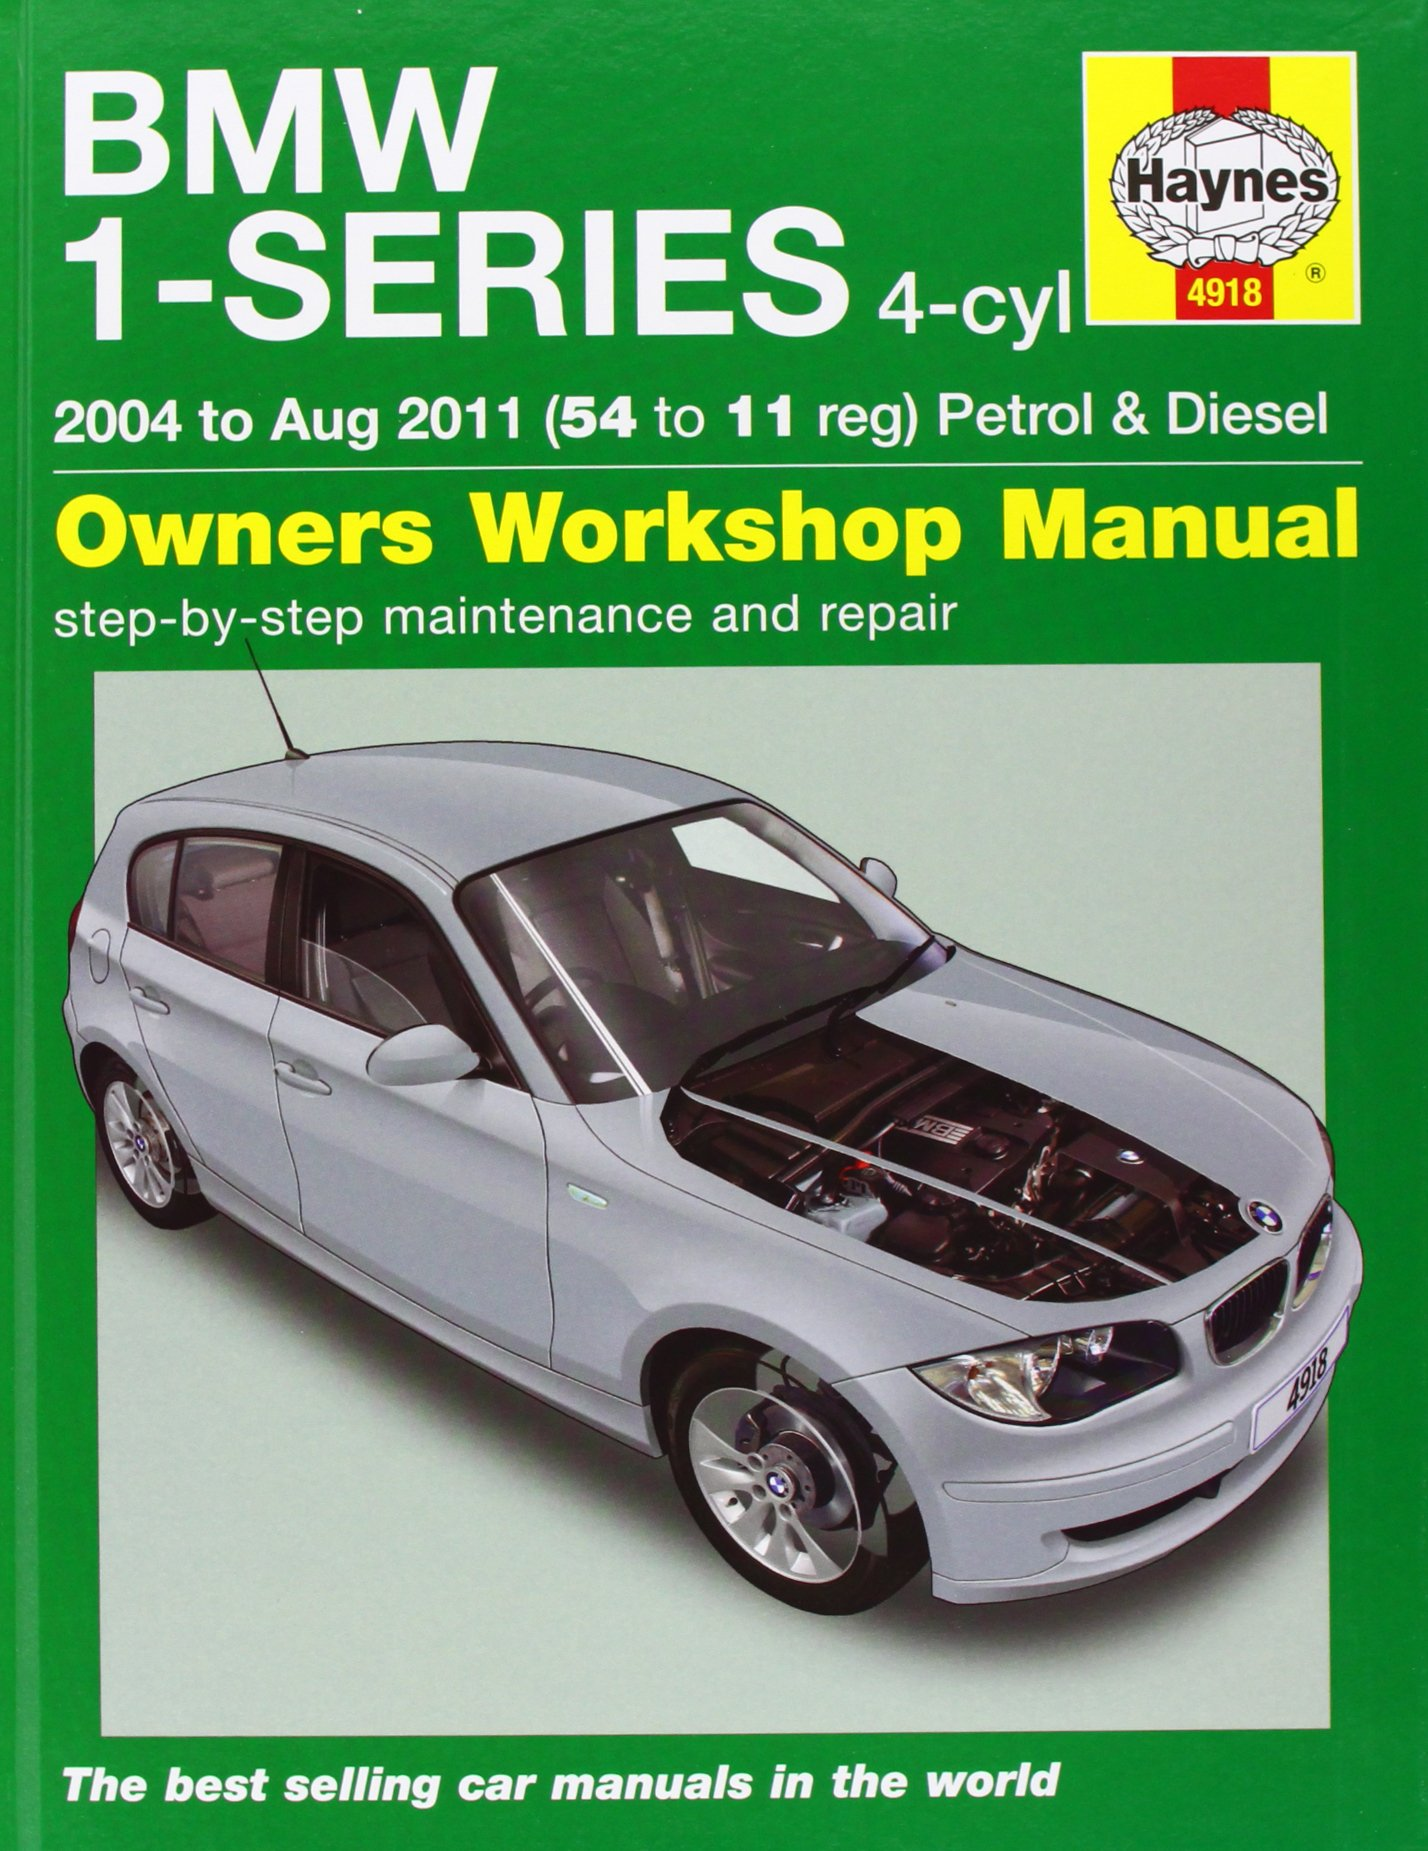 bmw 1 series petrol diesel 04 11 martynn randall haynes rh amazon com bmw manual book pdf bmw manual book pdf